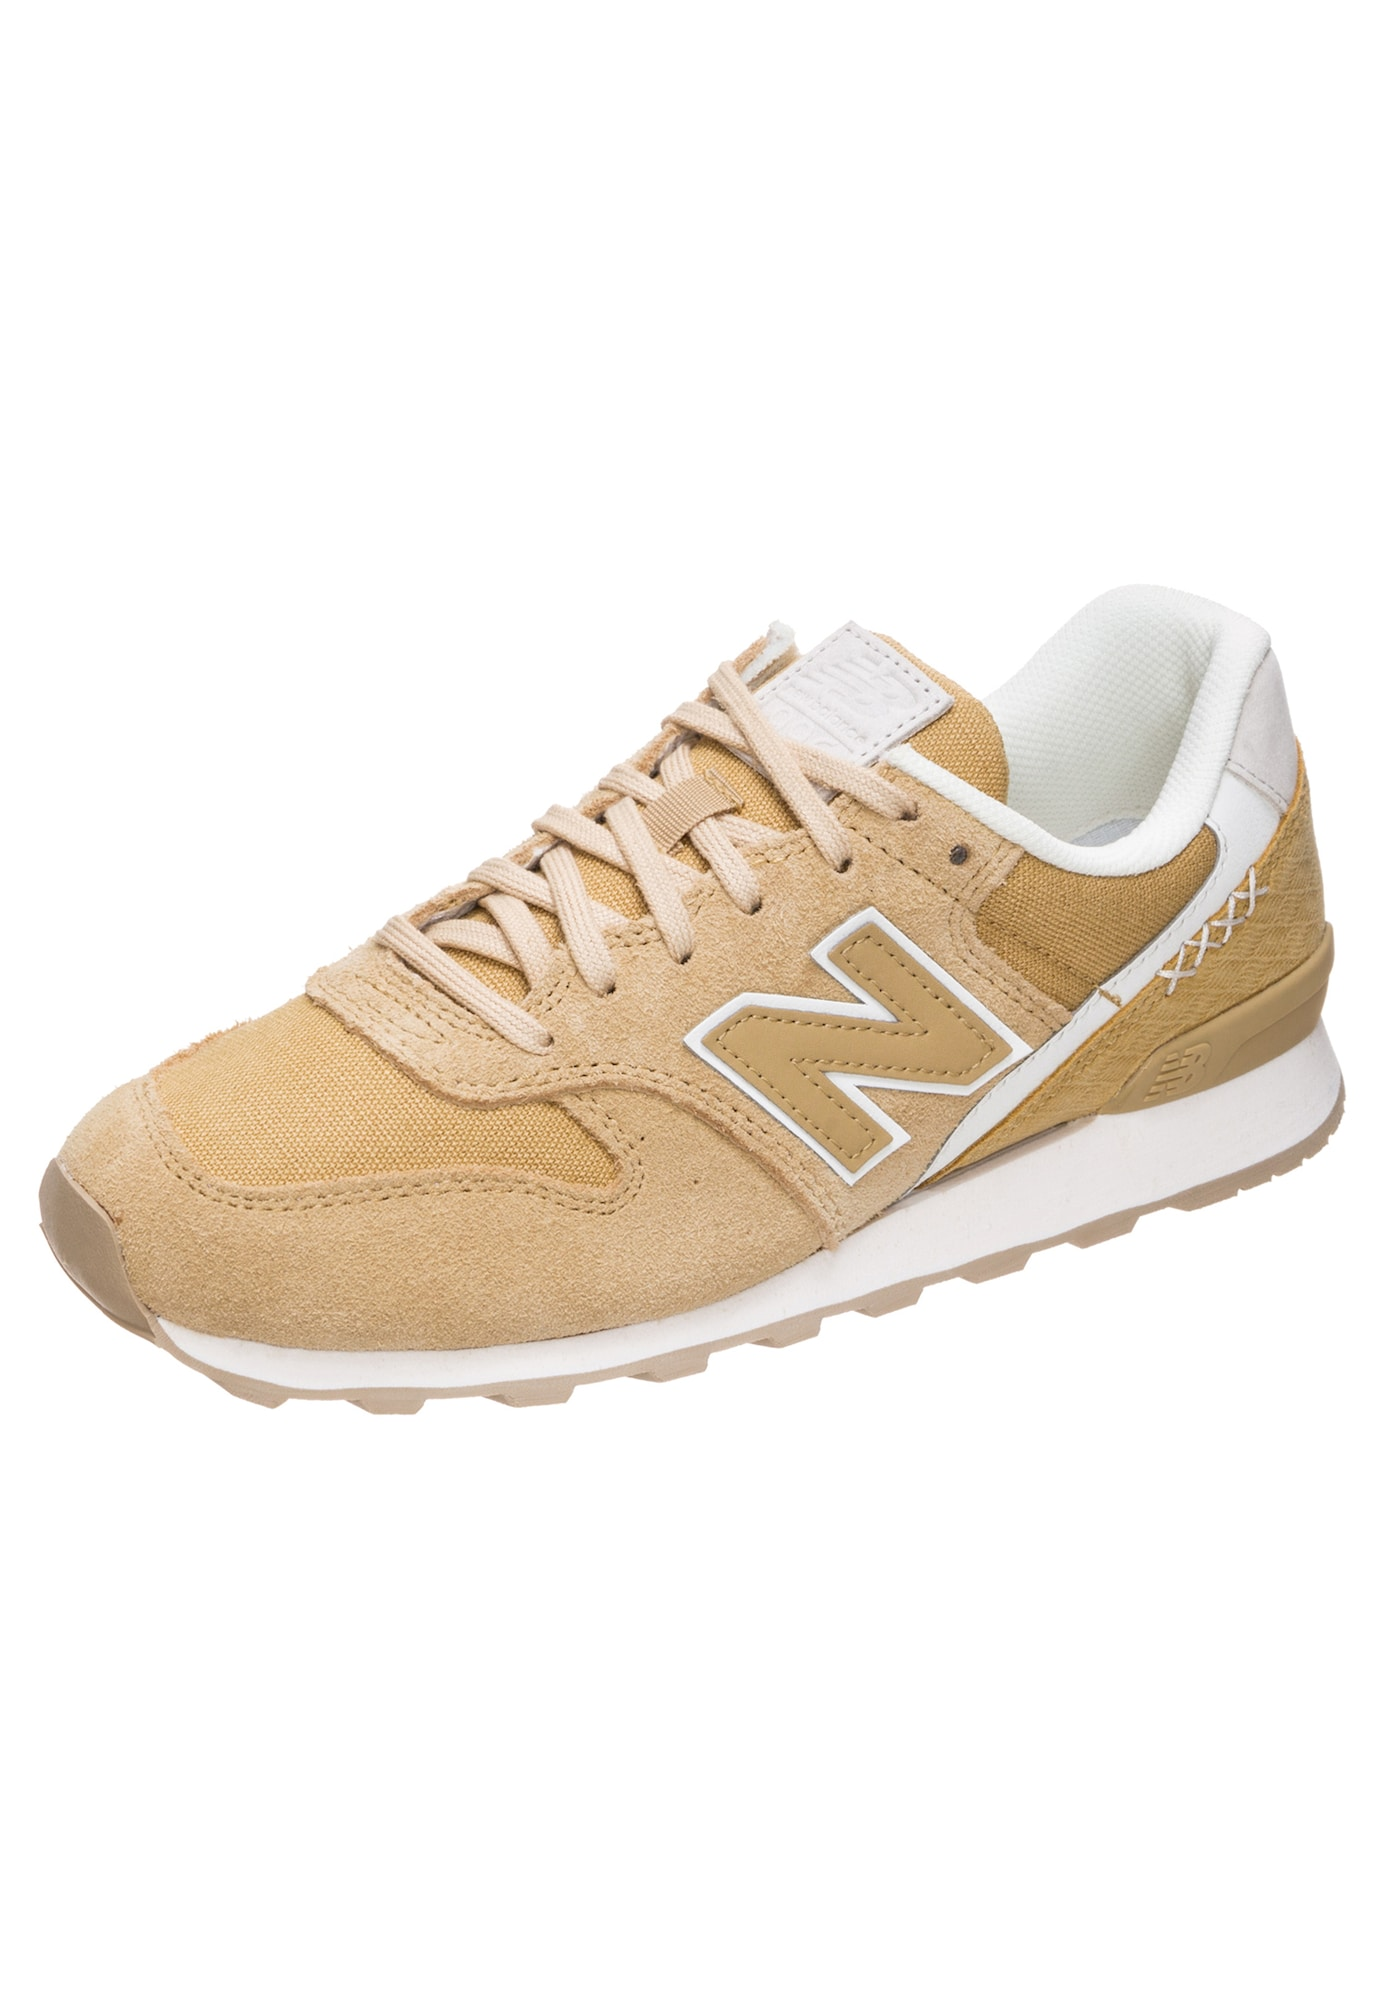 New Balance, Dames Sneakers laag 'WR996-BC-D', sand